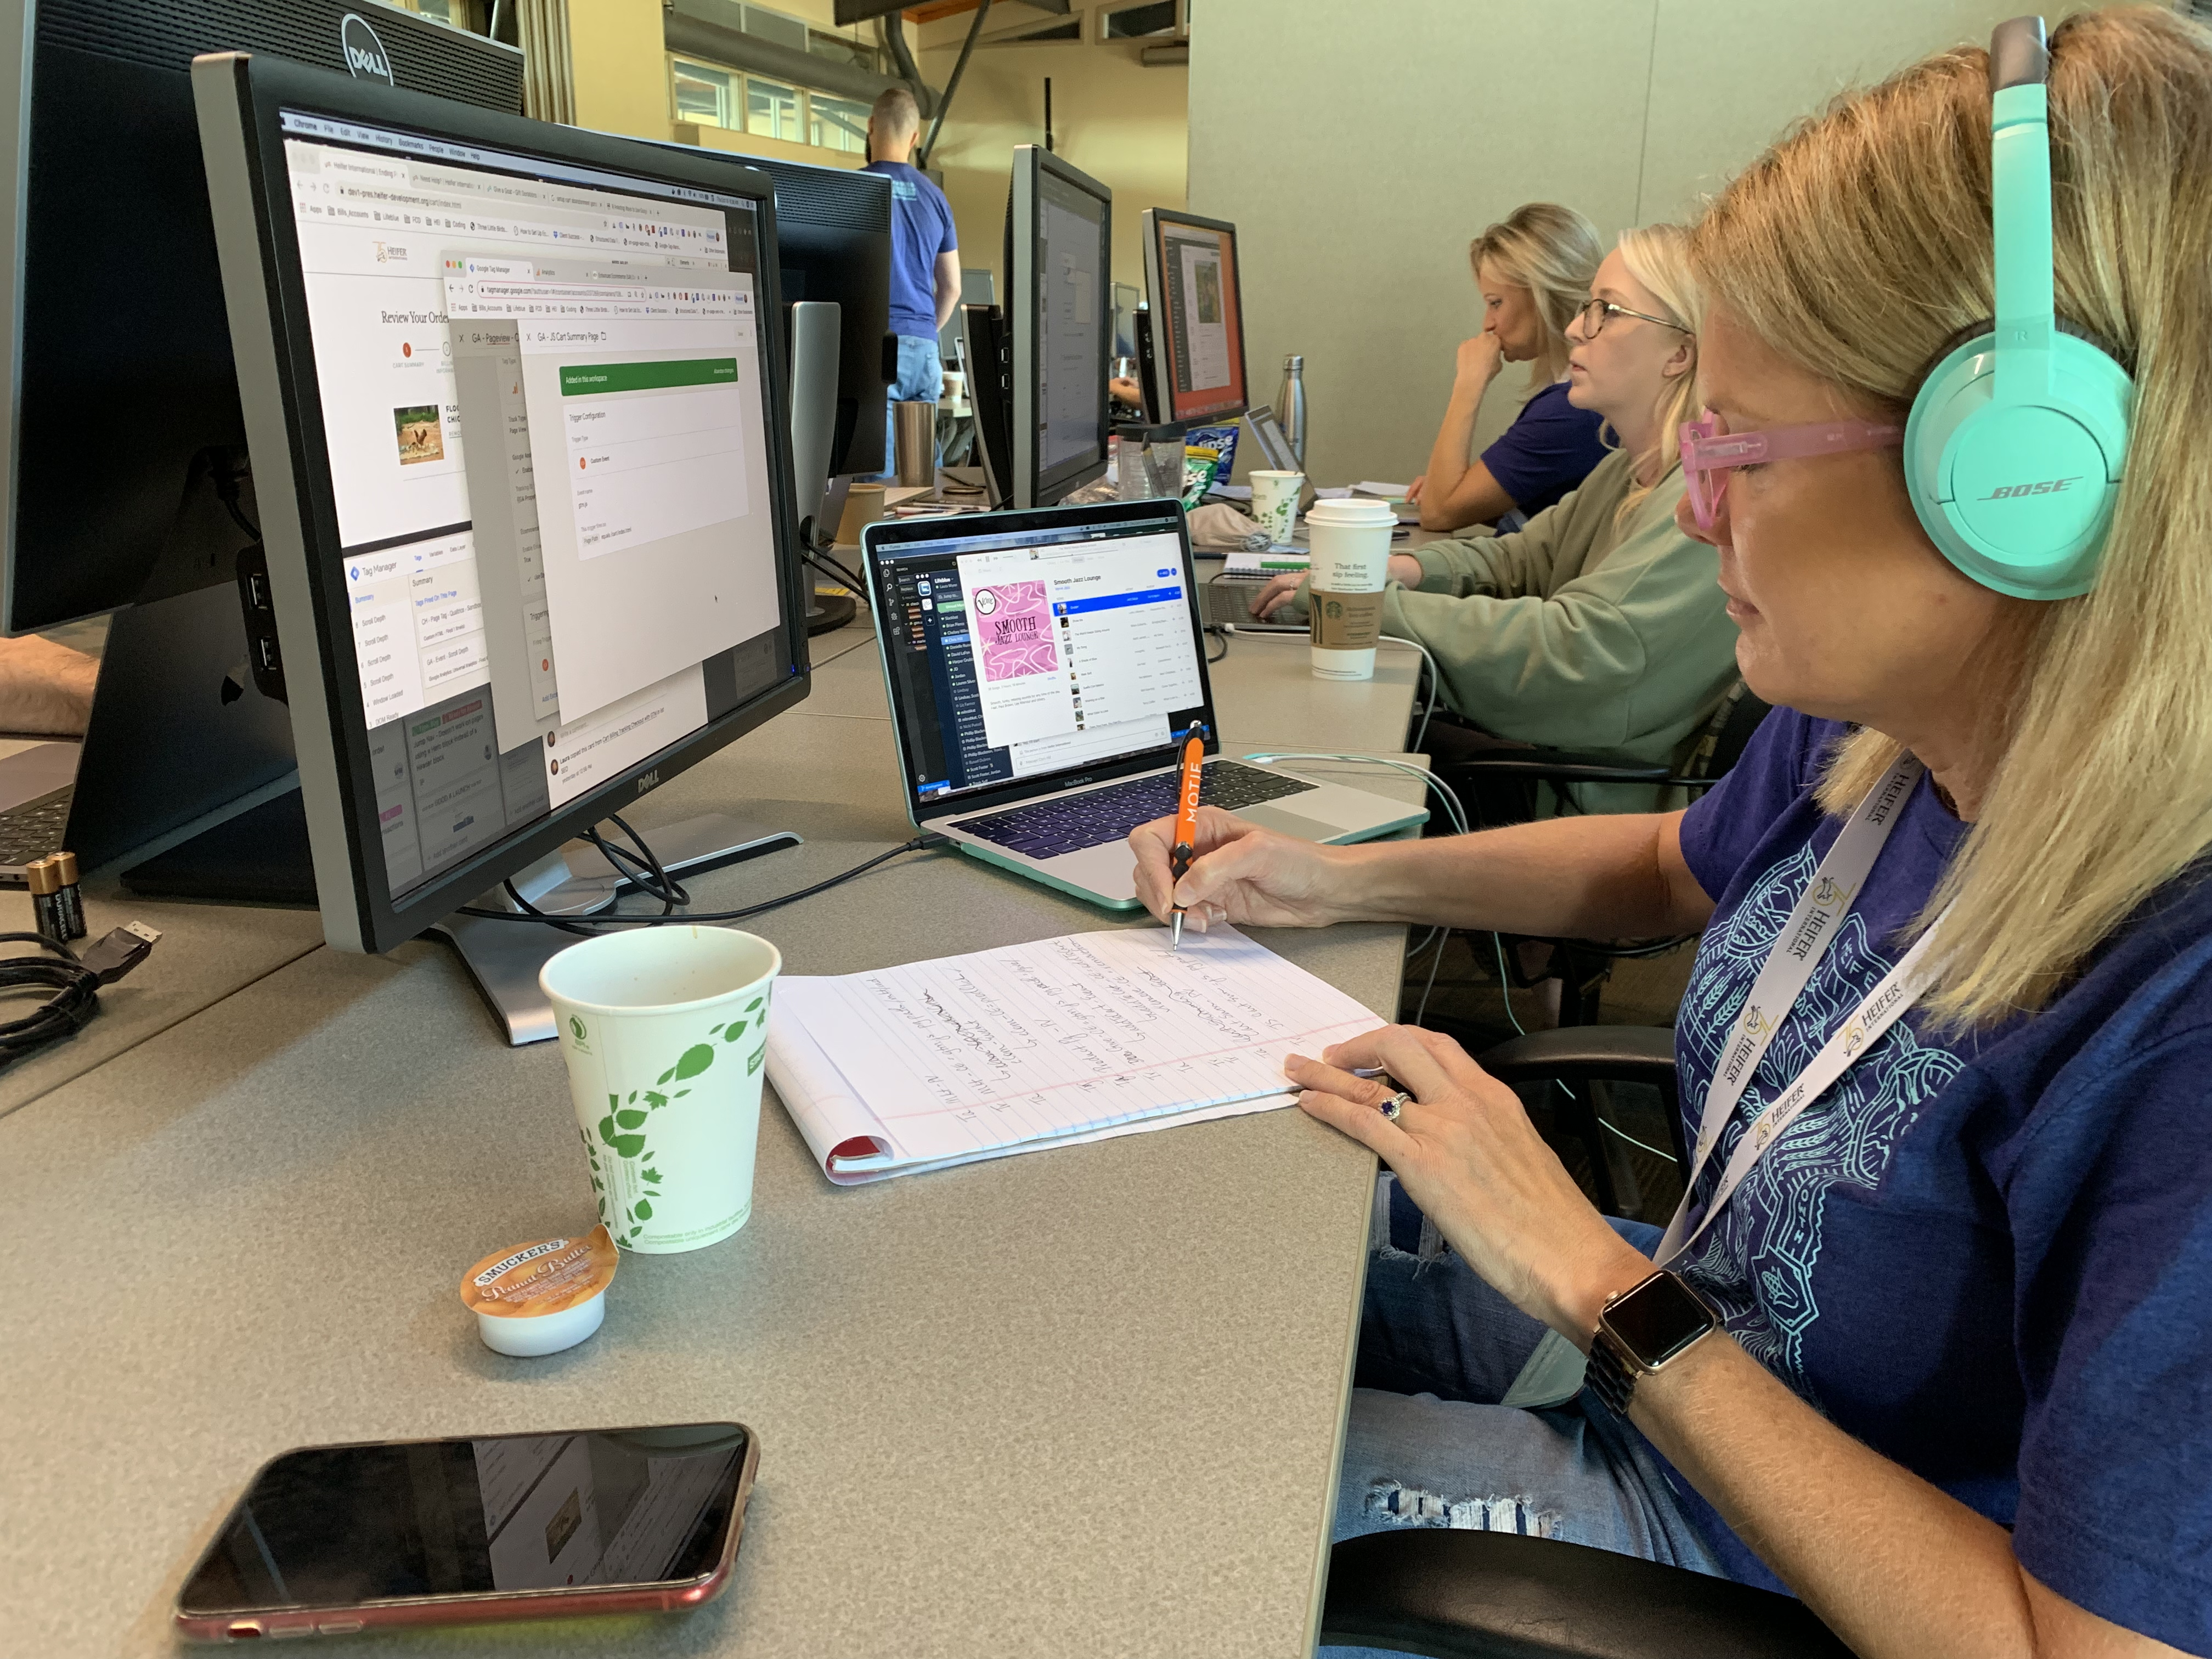 A Lifeblue team member with bright turquoise headphones writes on a pad of paper, while looking at a screen connected to her laptop. In the background are two other people working on computers.